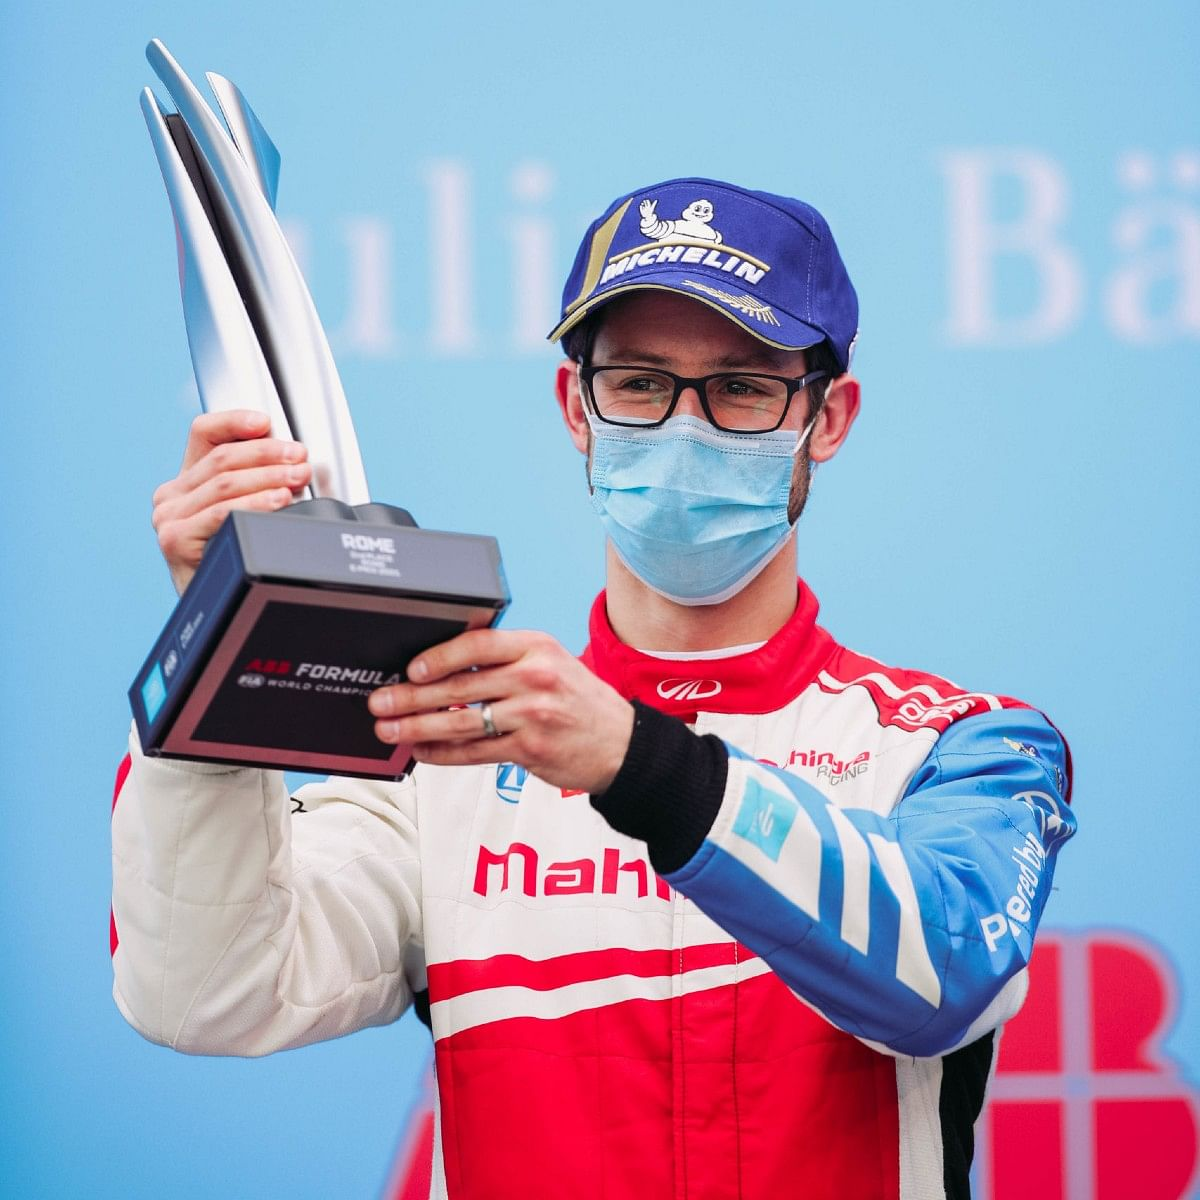 Alexander Sims podium finish at Rome E-Prix